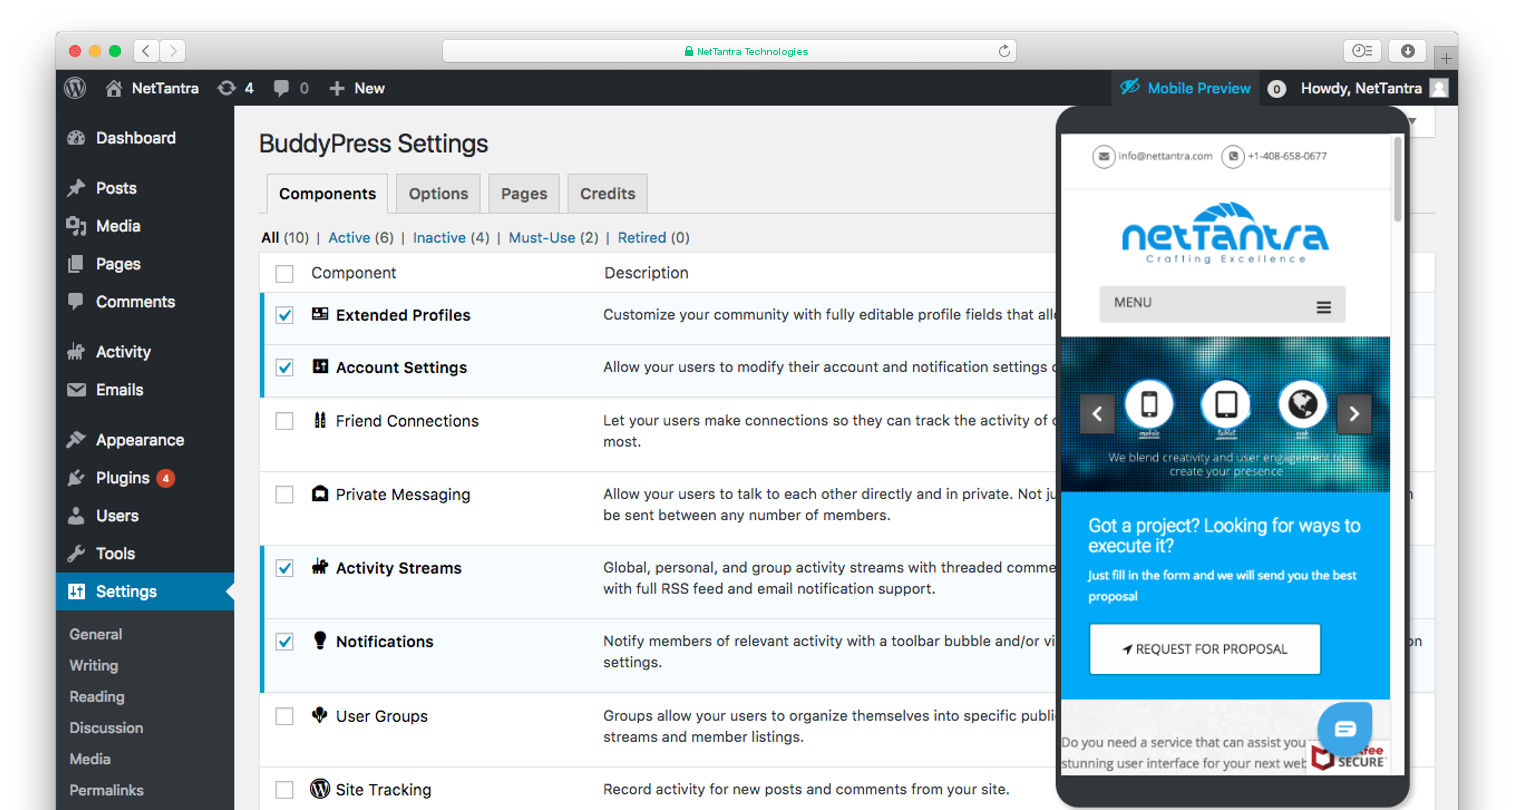 Screenshot for show Mobile Preview Drawer menu to WordPress Admin Header bar and Mobile preview screen.